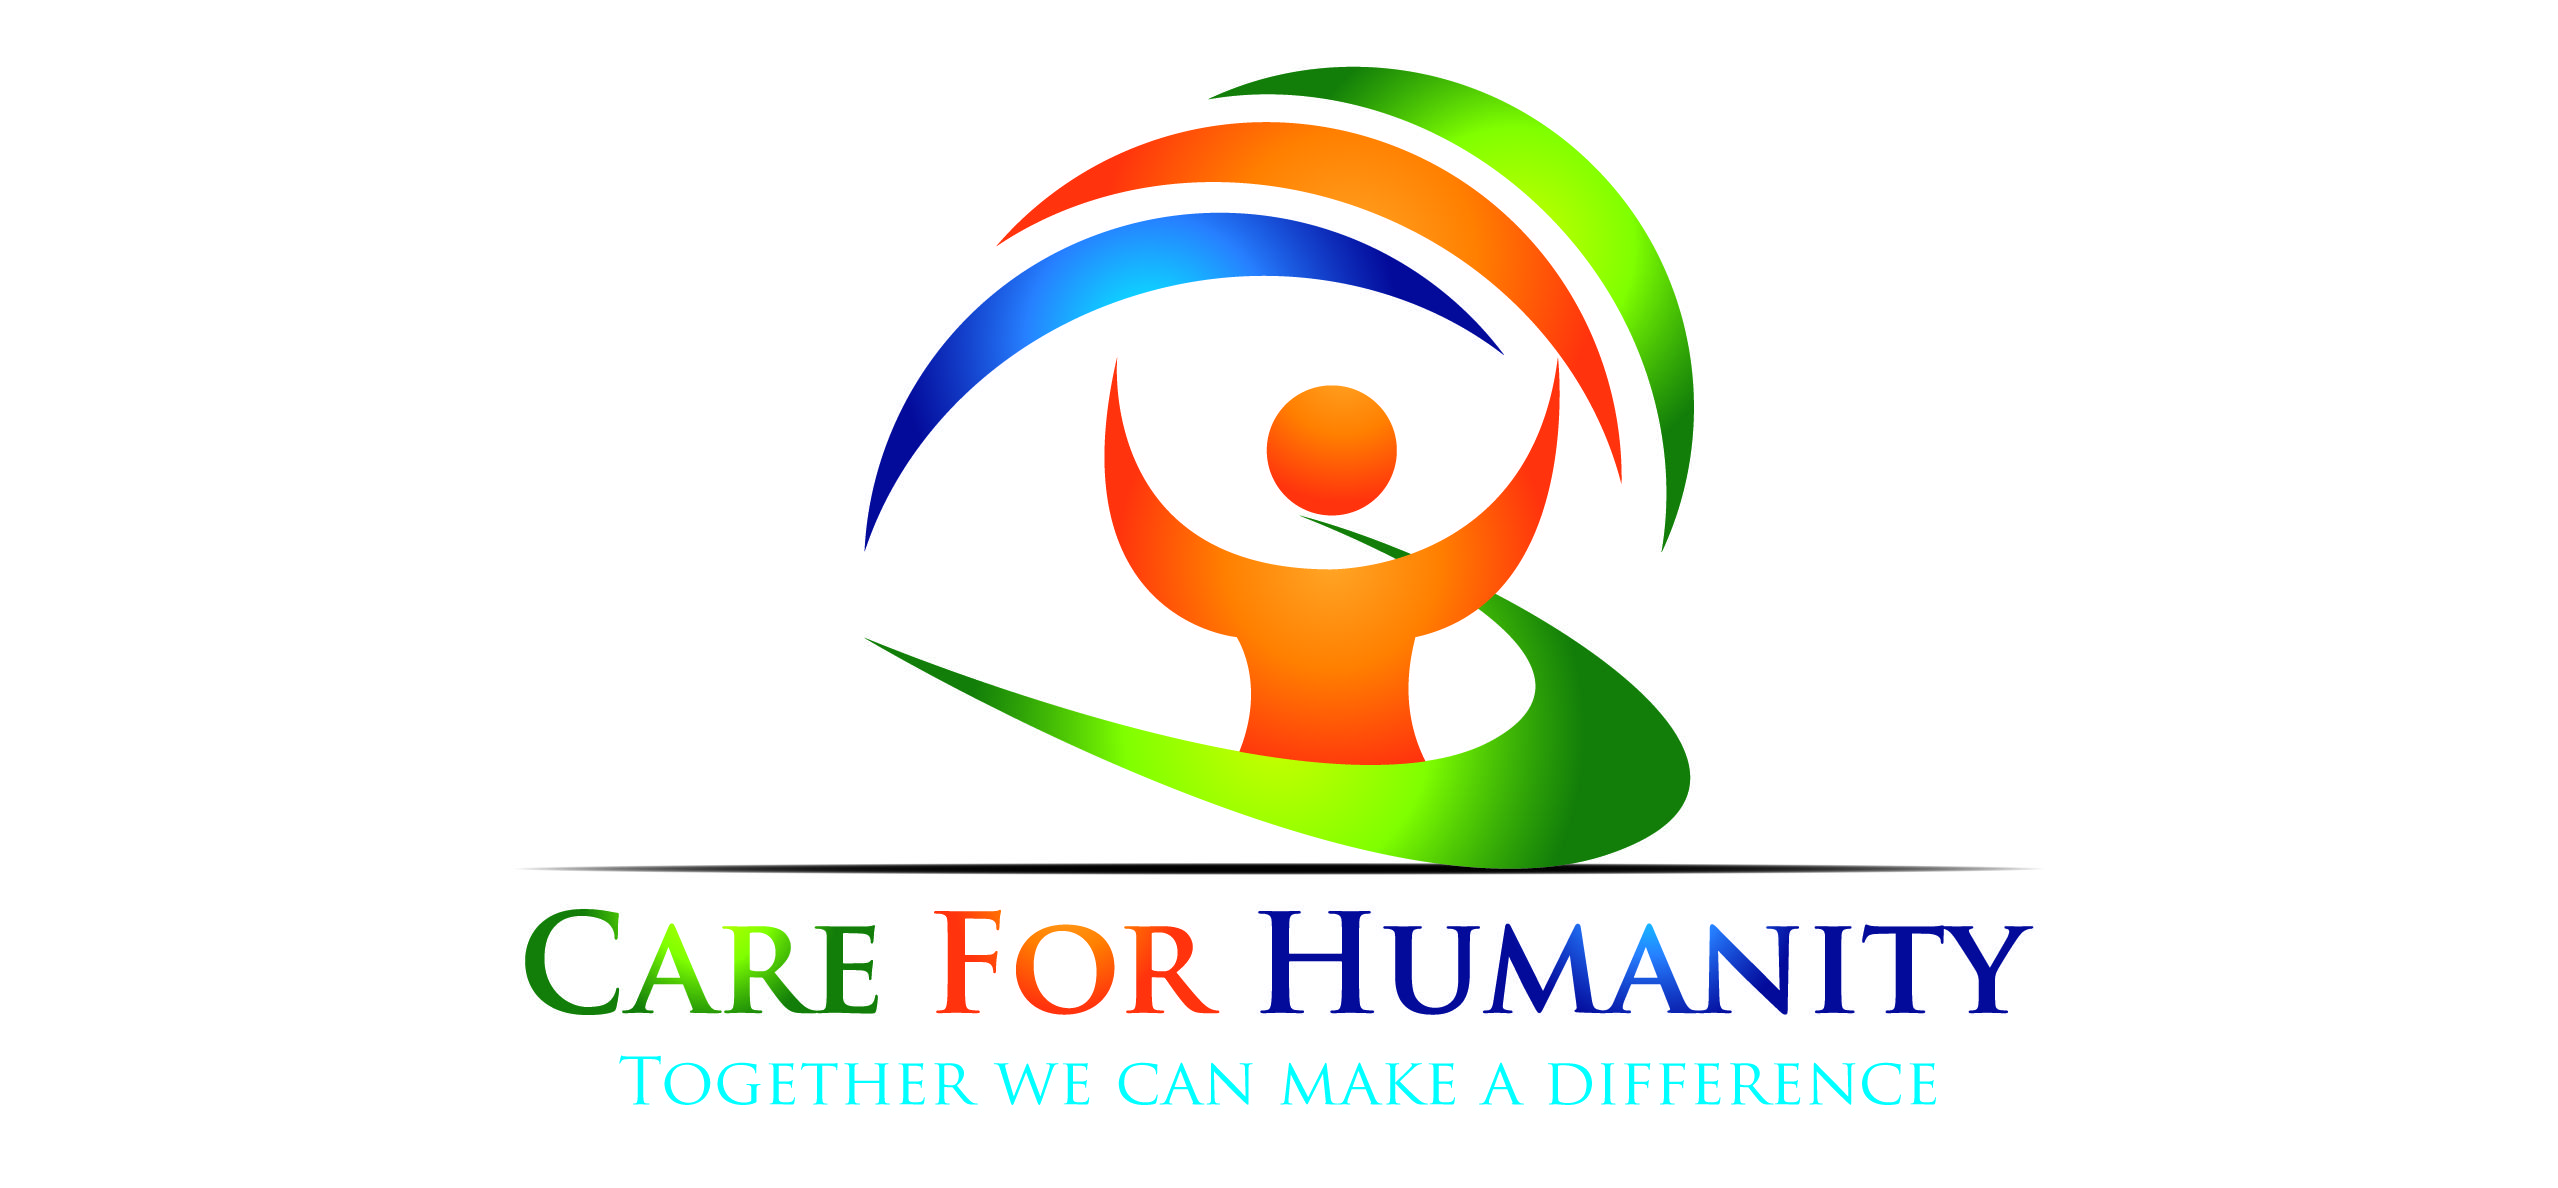 care for humanity logo visit us at www care4h org charity